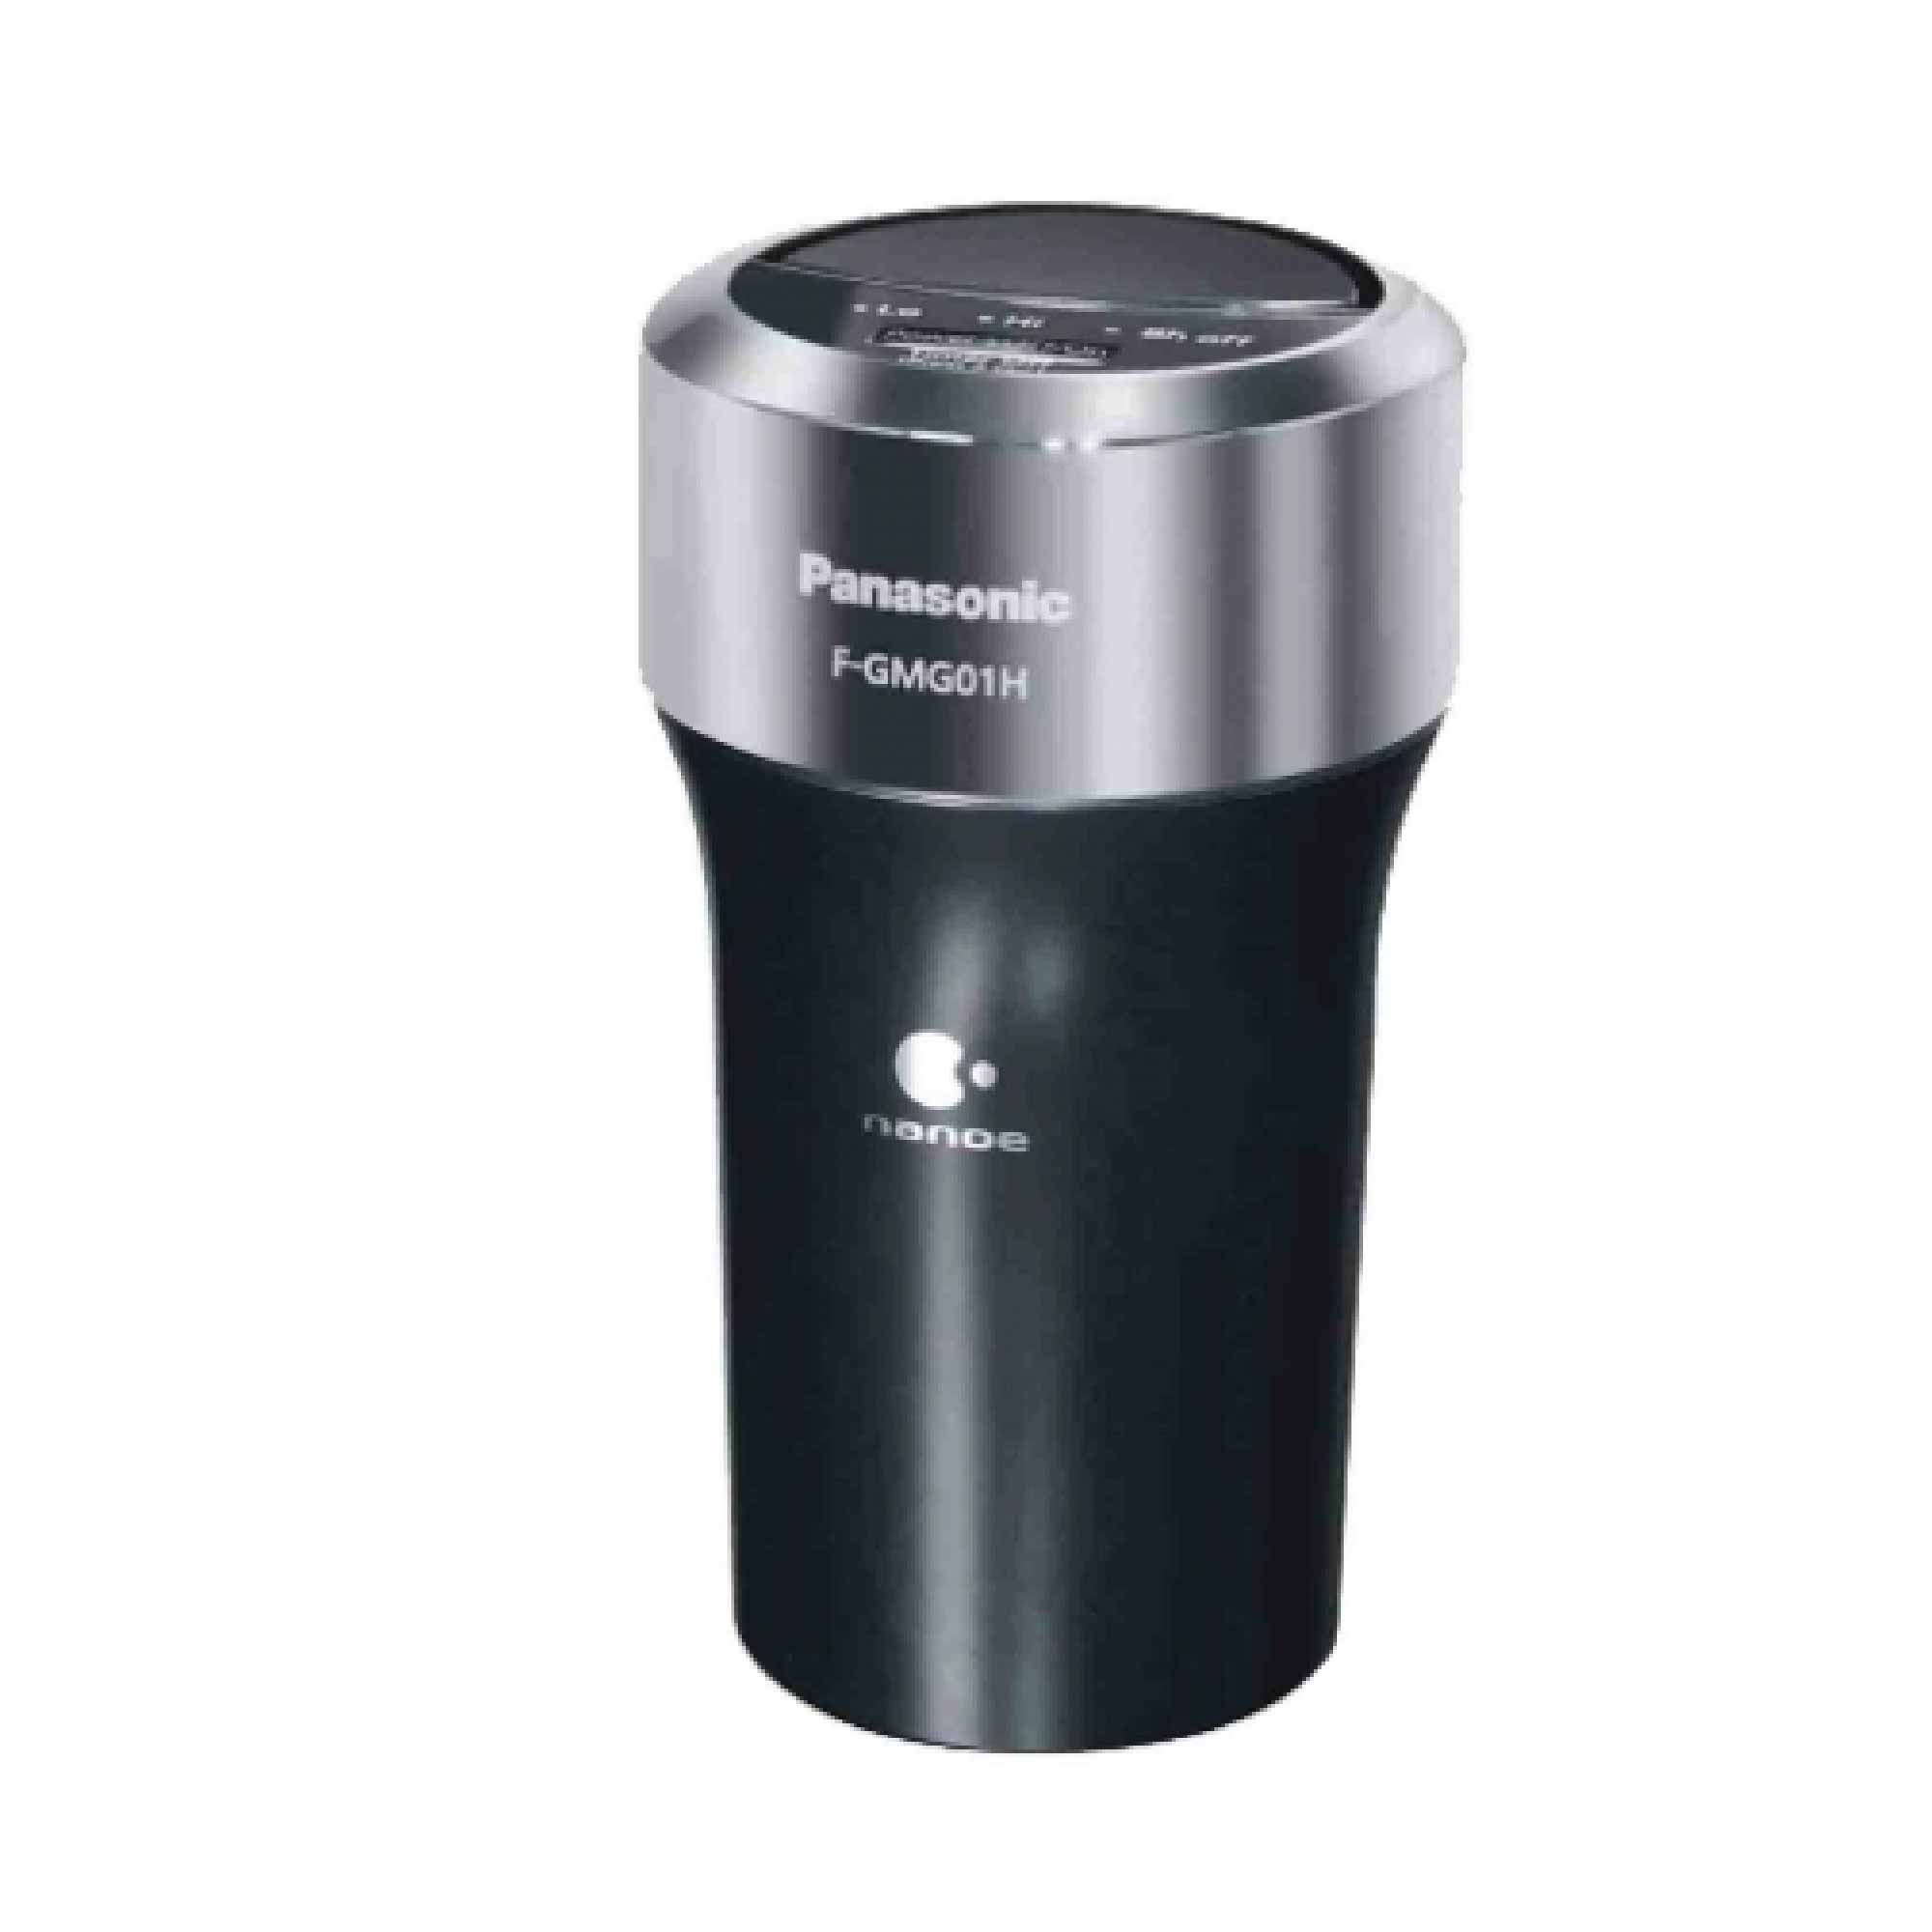 Panasonic Car Air Purifier F-GMG01A (Made In Japan) Nanoe Generator